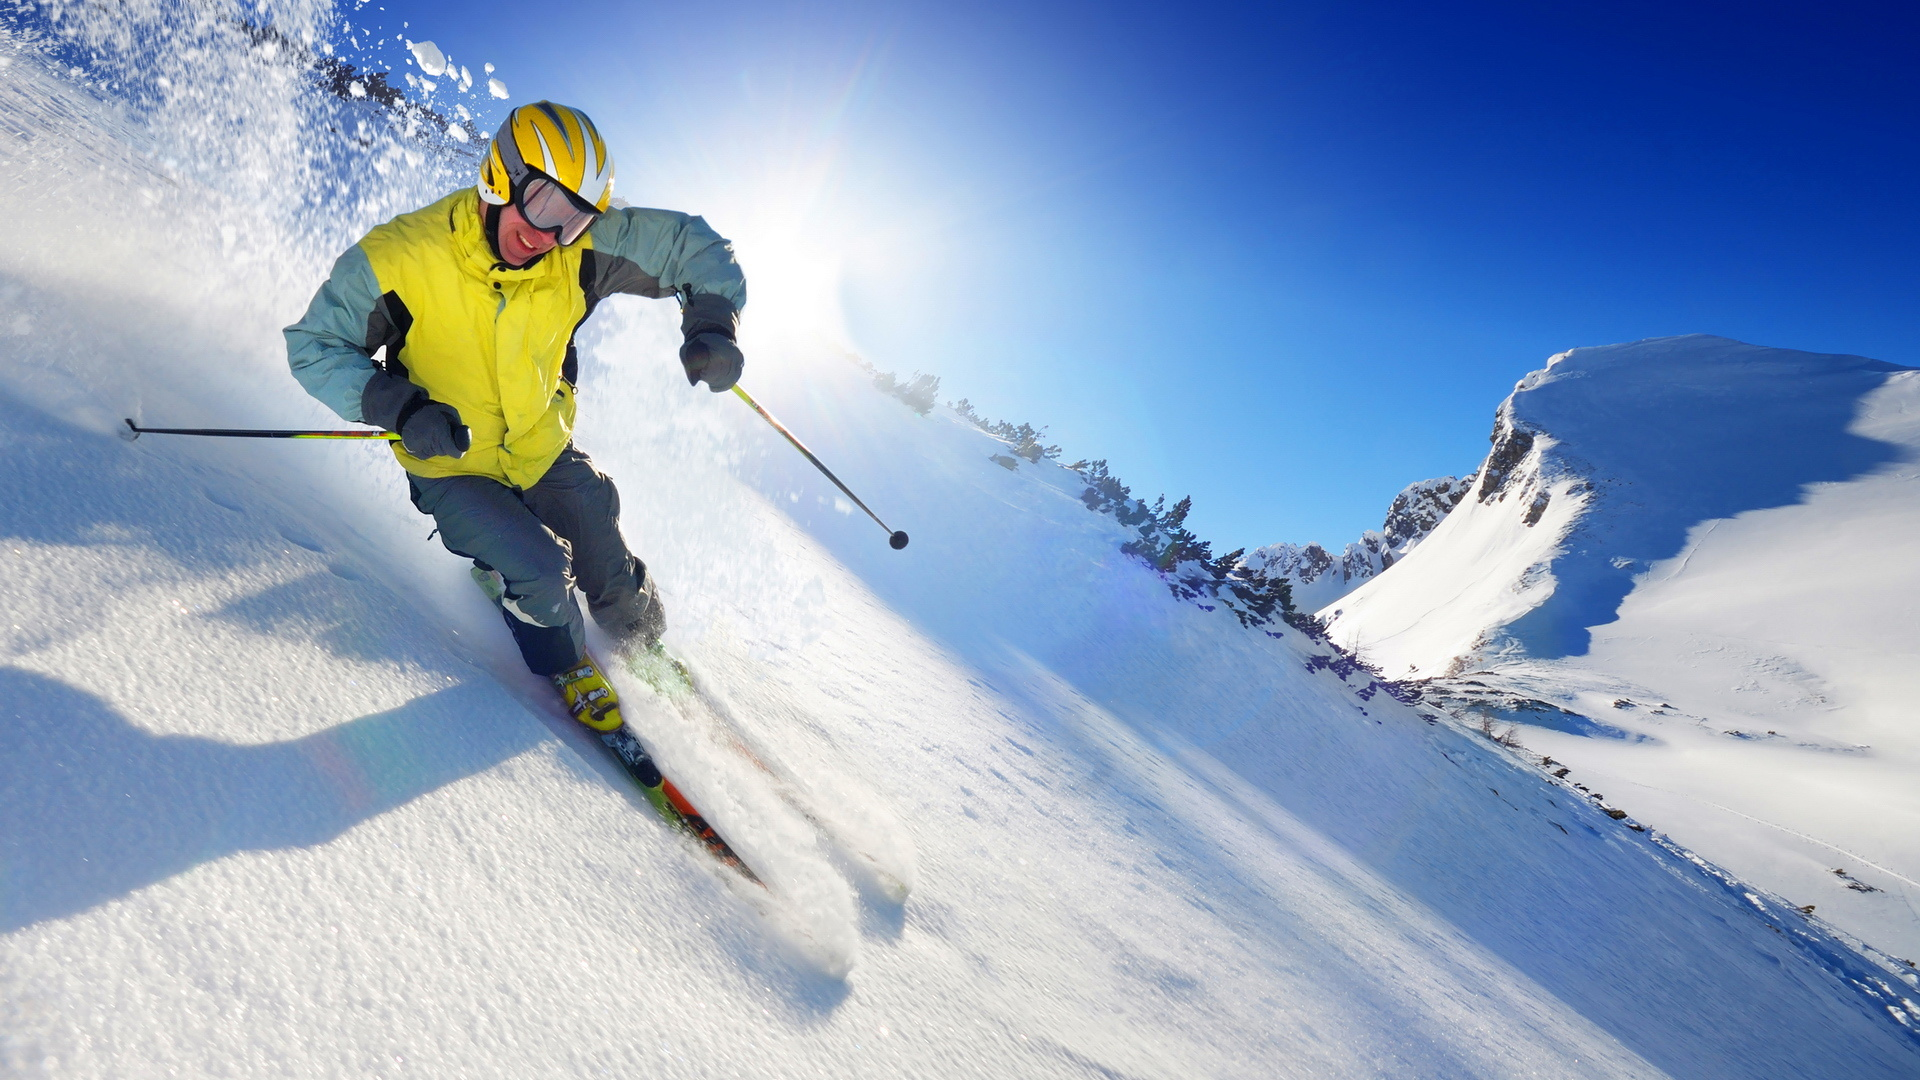 Down Jacket shows excellent Clo value for outdoor skiing